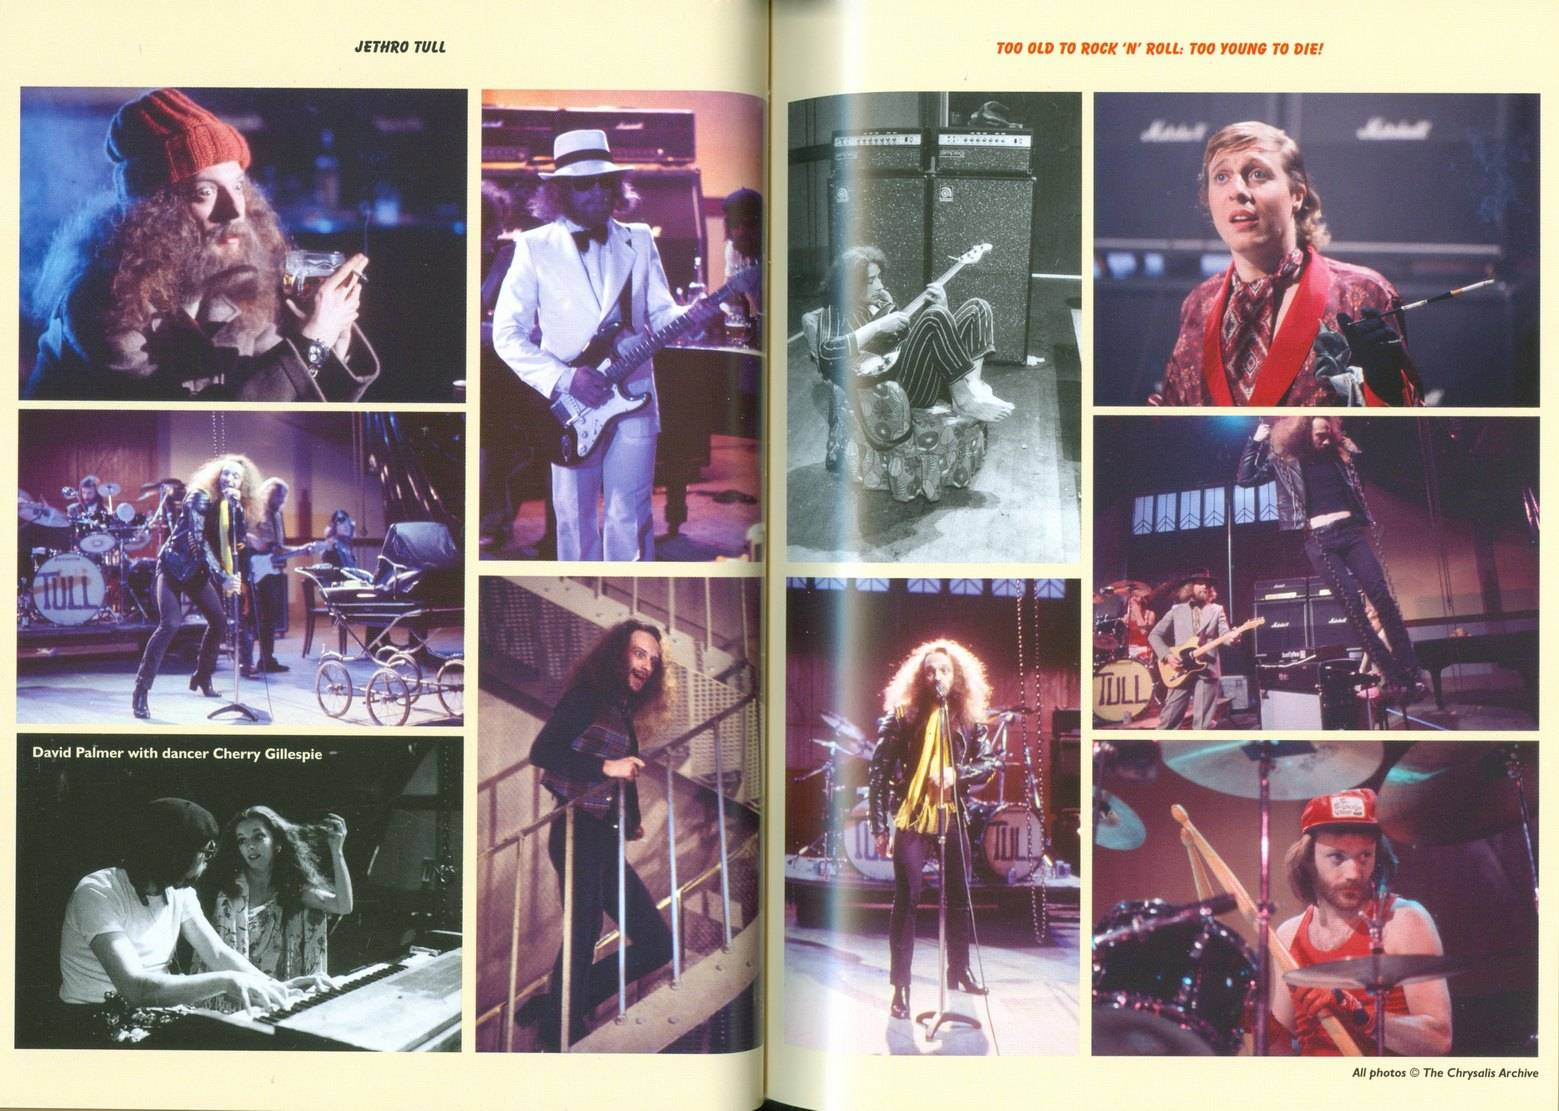 Jethro Tull - Too Old To Rock 'N' Roll, Too Young To Die (1976) {2015 The TV Special Deluxe Edition 2 CD + 2 DVD}